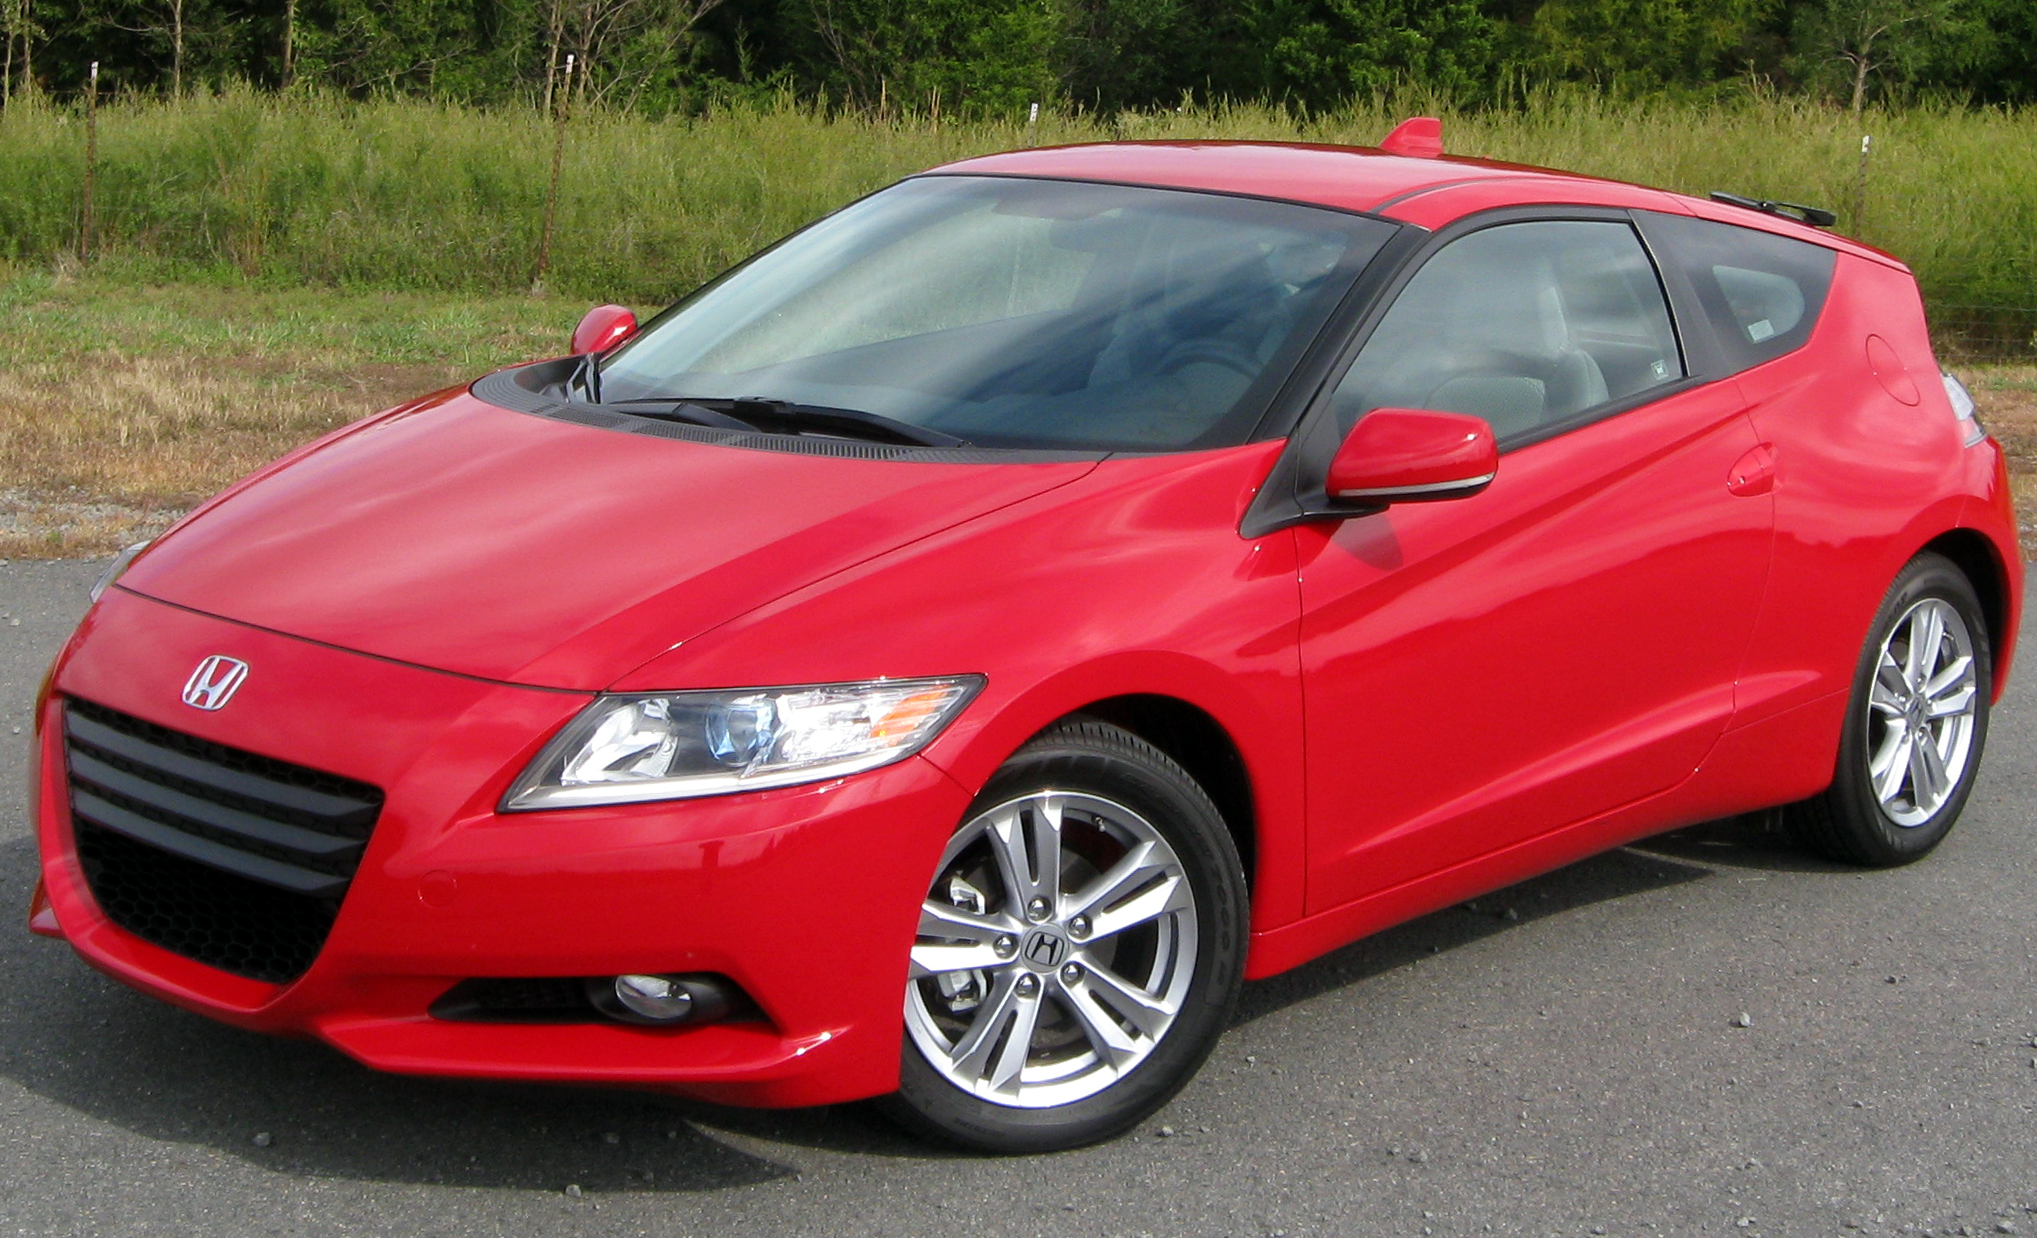 Pictures of honda cr-z #3